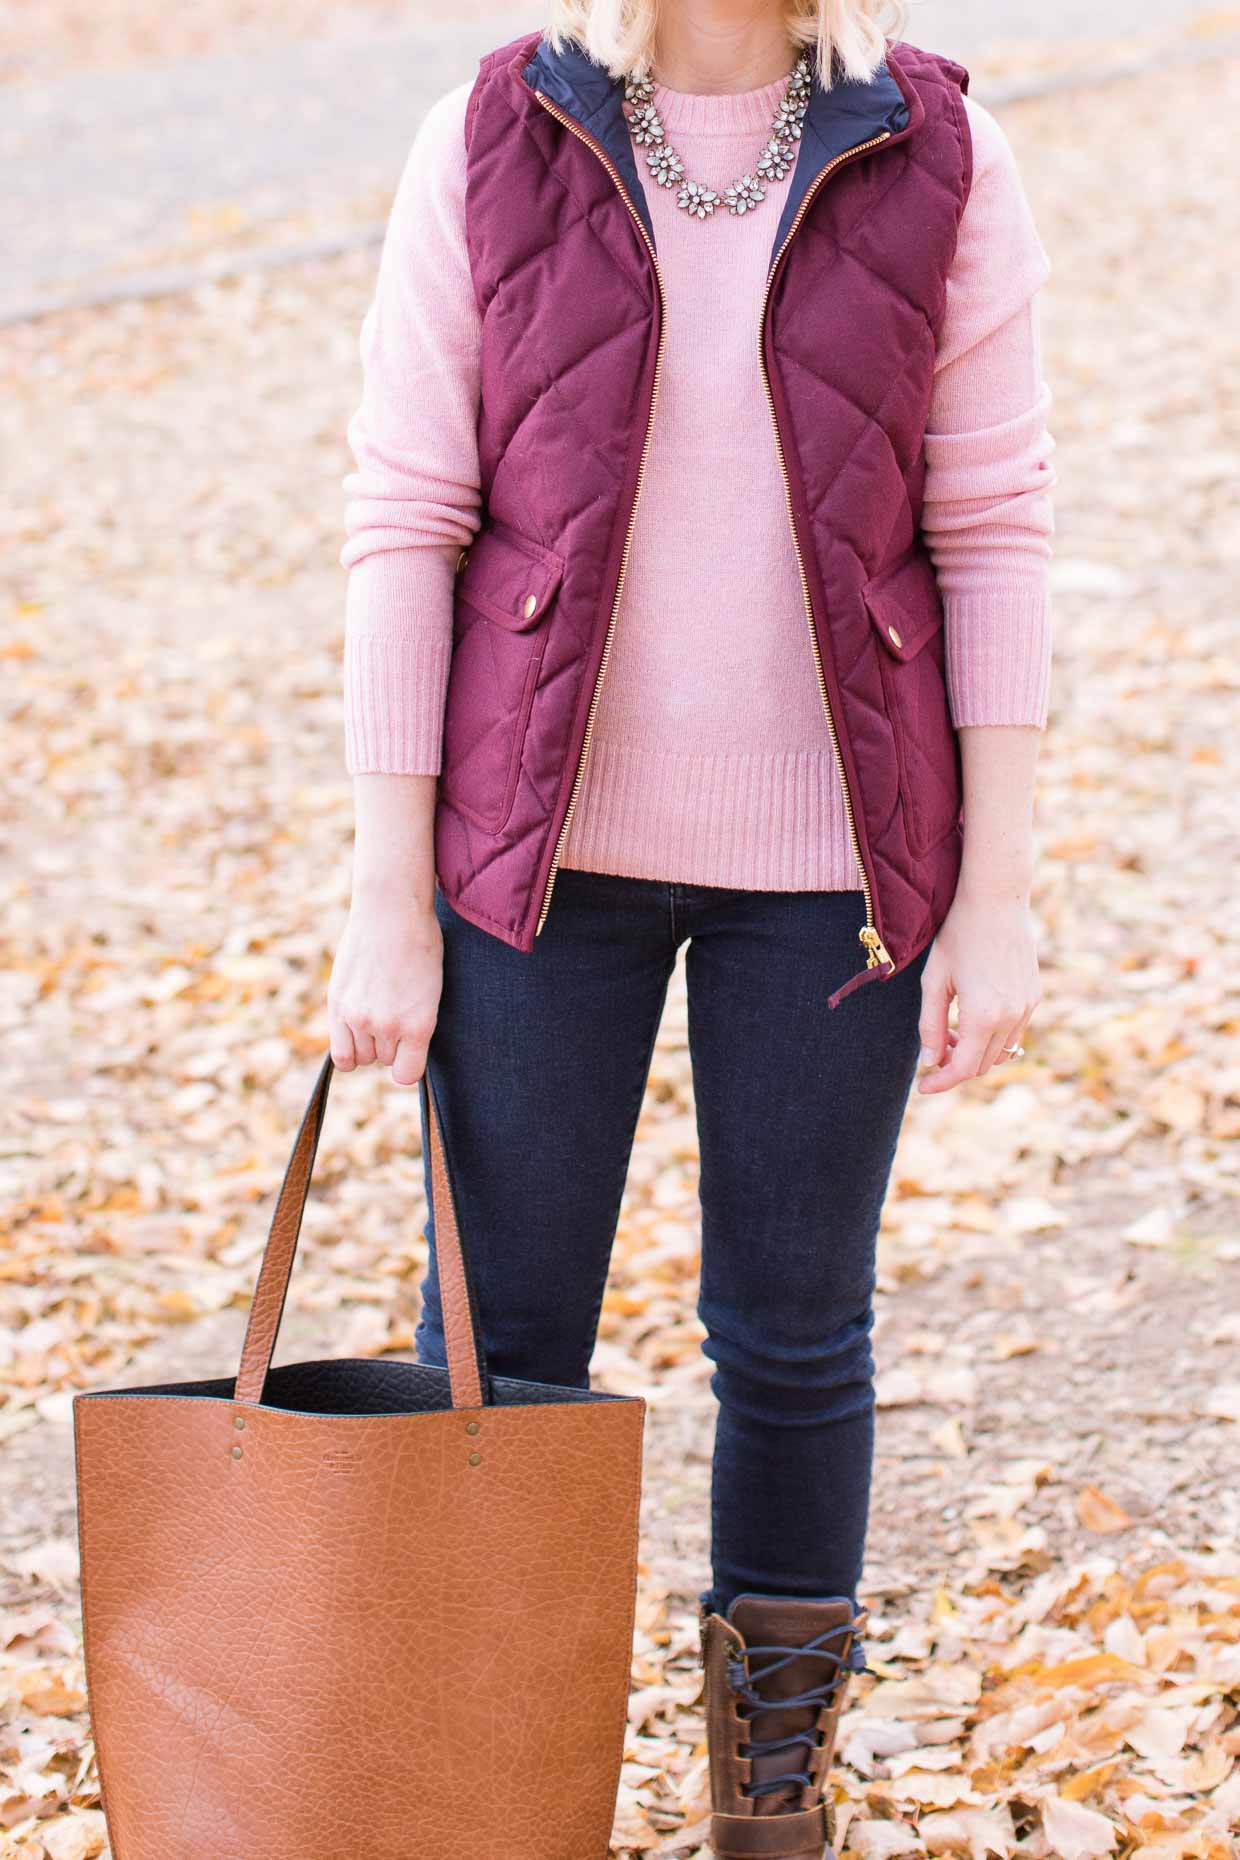 J.Crew Excursion Quilted Vest - Poor Little It Girl